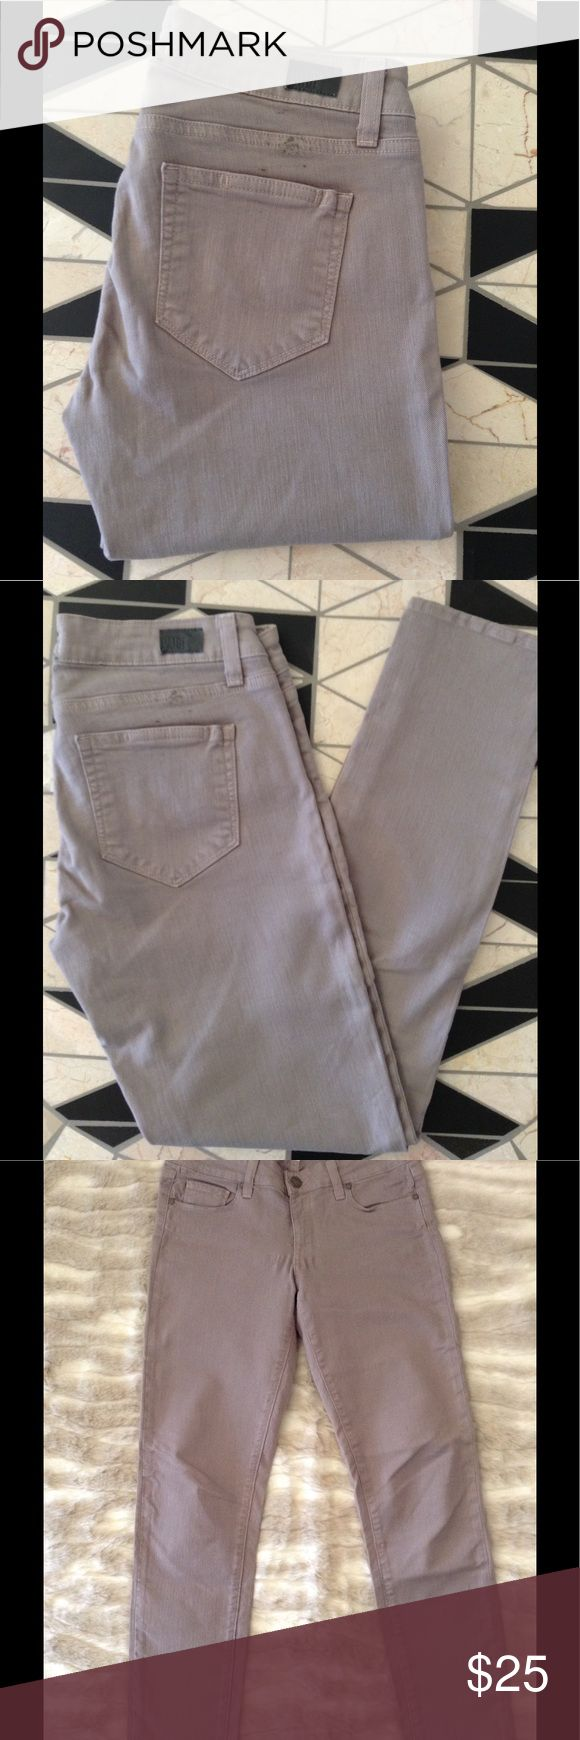 PAIGE - Skyline Peg Skinny Taupe Jeans Paige Premium Denim - Skyline Peg Skinny Jeans. Retail $168.00. Size: 27. Material: 98% Cotton, 2% Elastane. Inseam: 29 inches. Color: Taupe ( khaki/grayish rinse). Purchased at Paige jeans in L.A. During a sample sale. Worn once, as I needed a much longer pair and these were an impulse buy because the color is incredible.  Rinse is intentionally distressed to look beach washed and lived in. Two small adhesive marks above back pockets. (Purchased in…